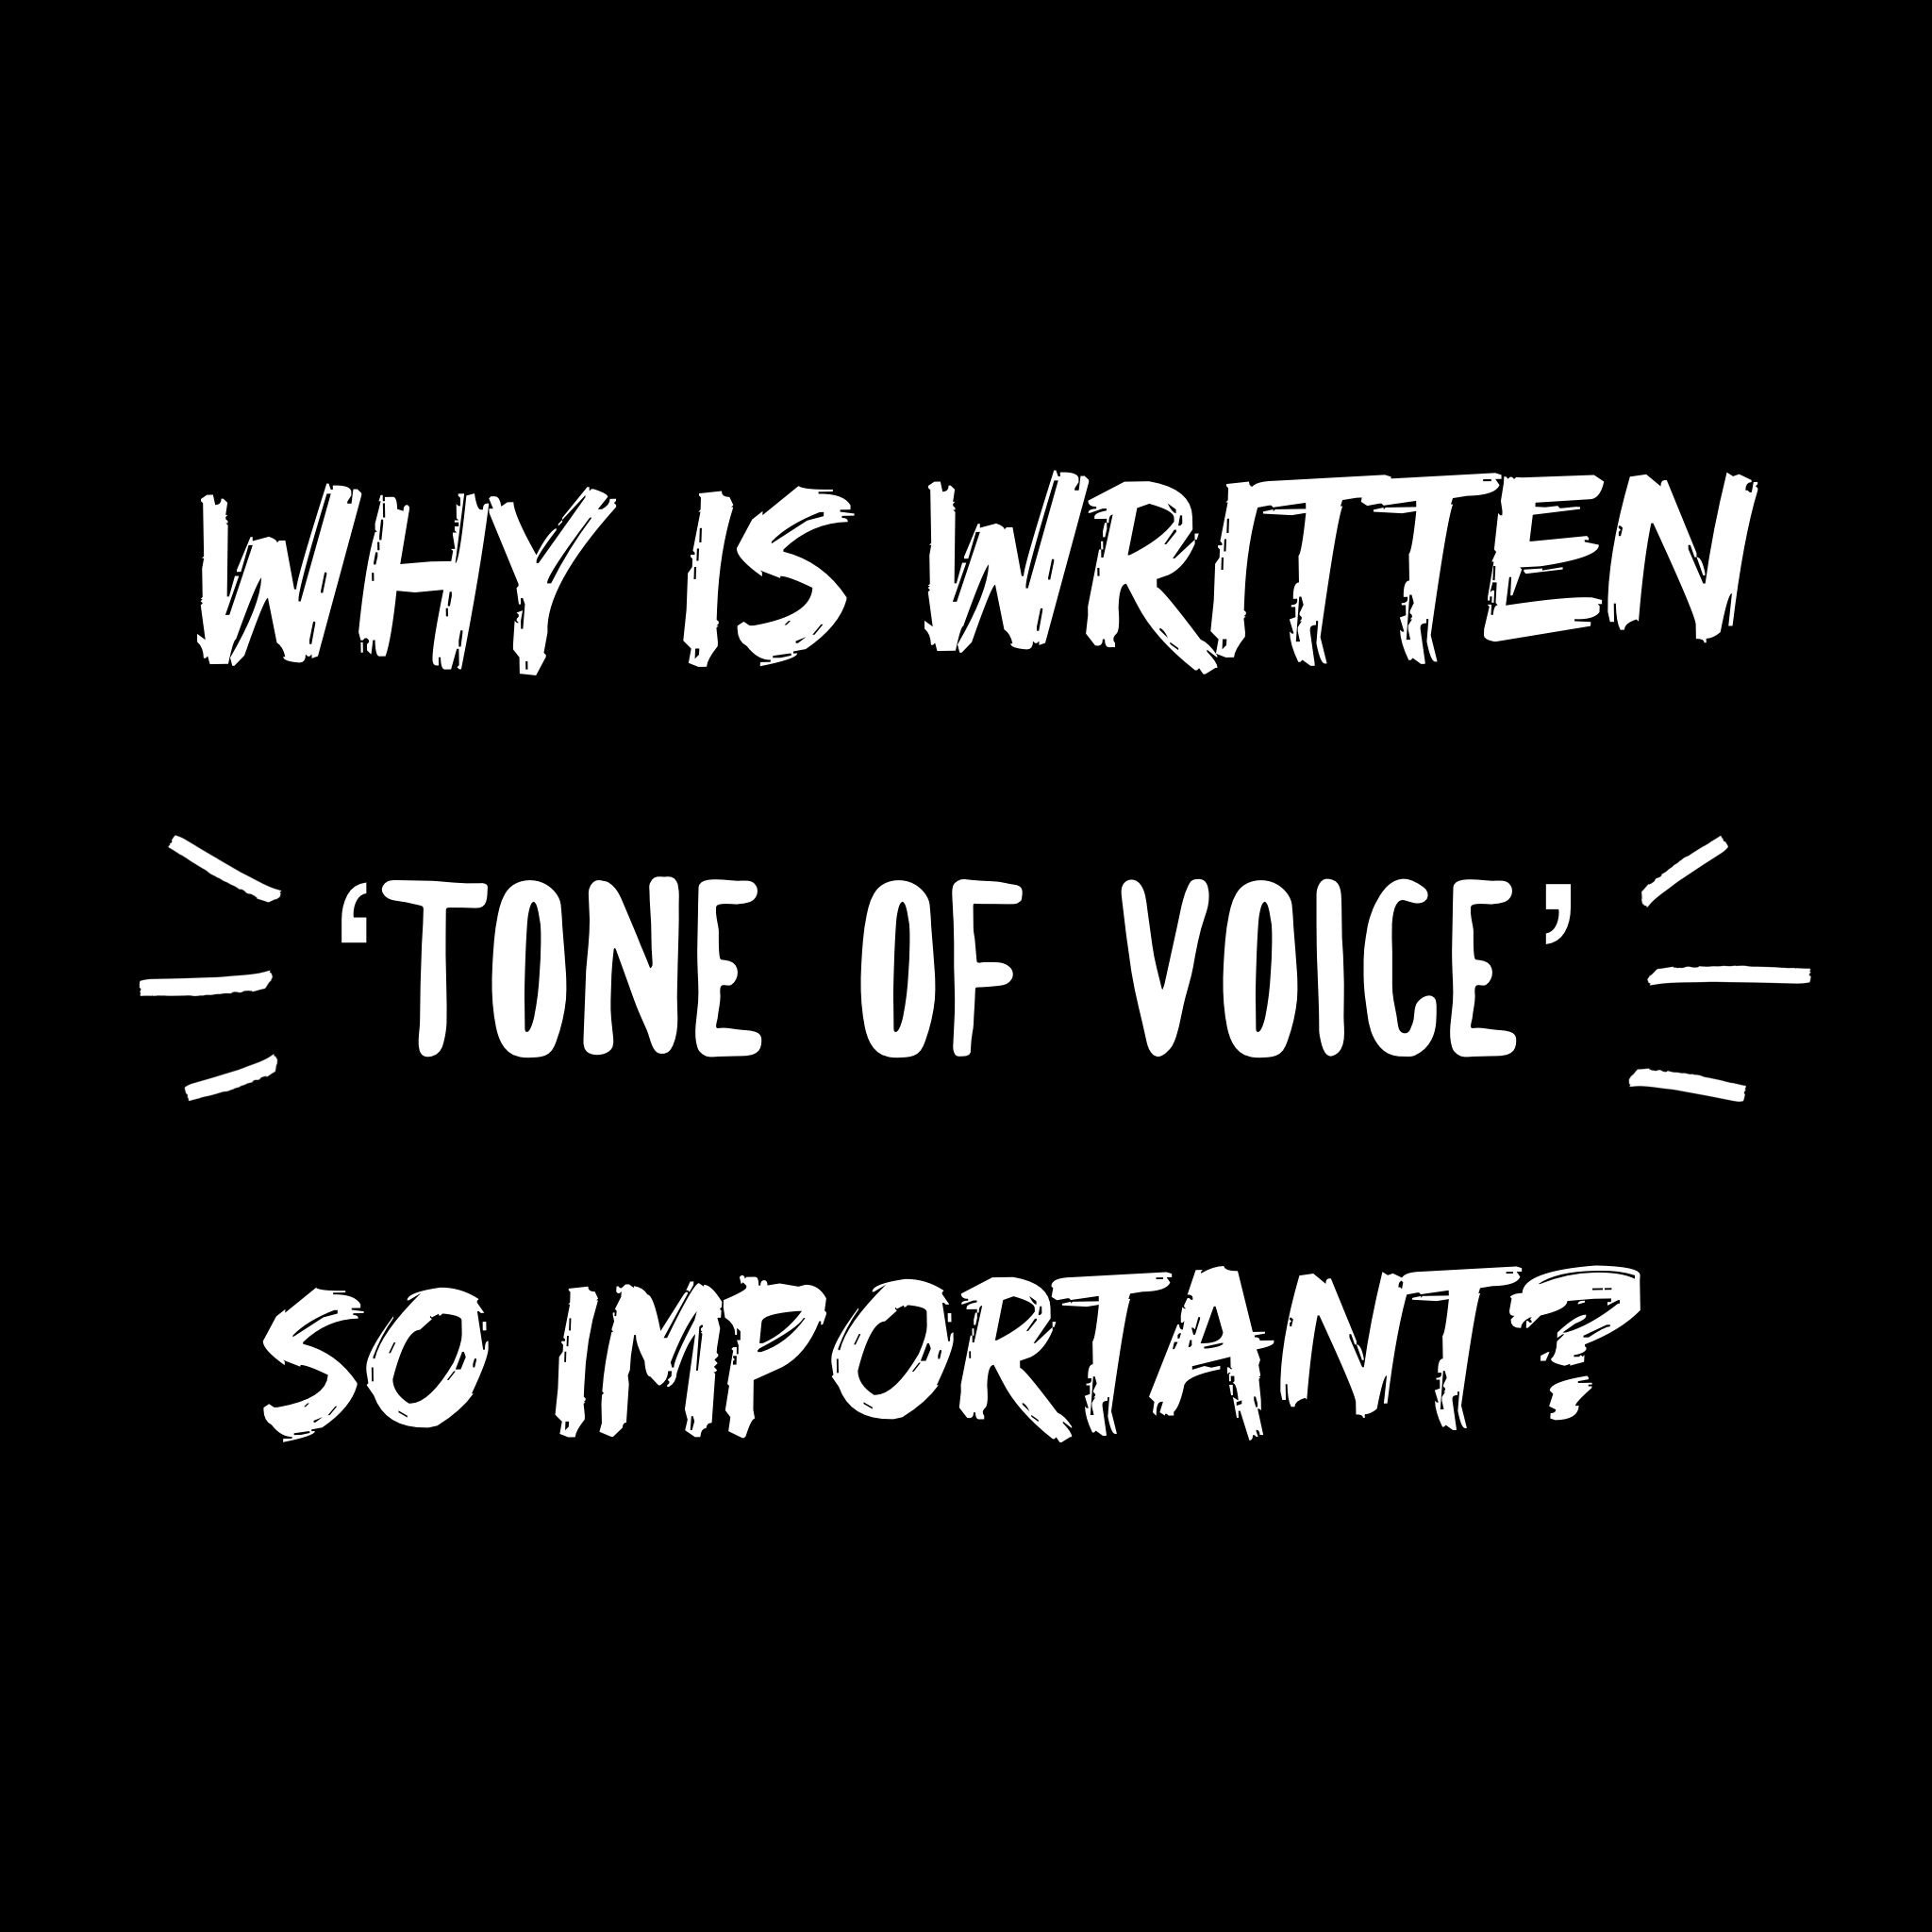 Why is Written Tone of Voice So Important?